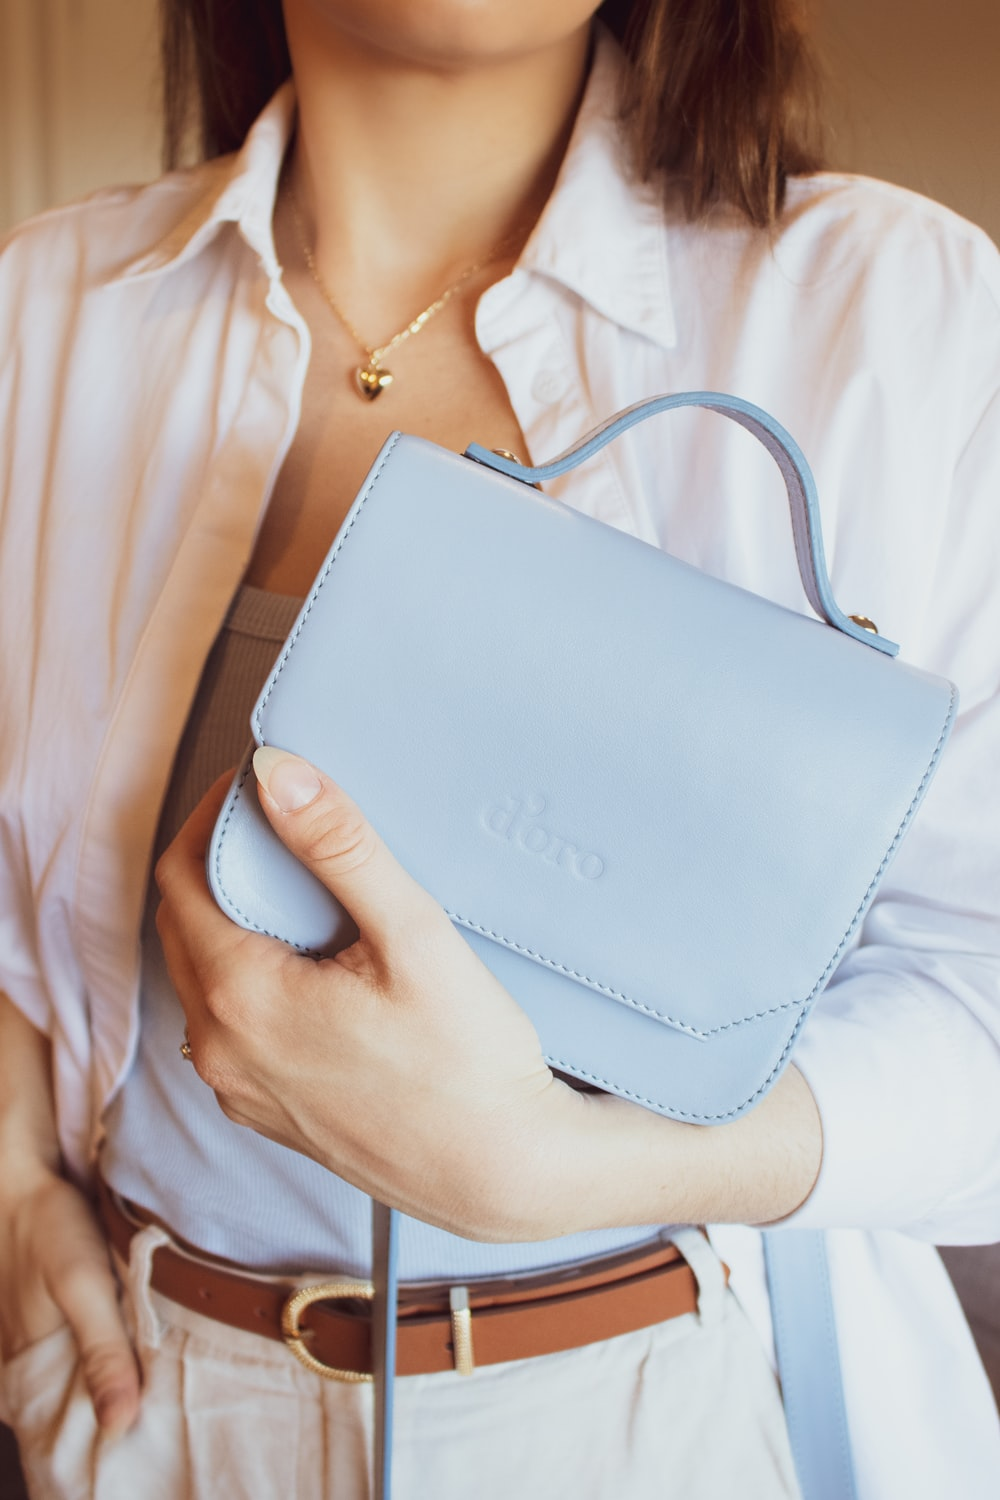 woman in white shirt holding white leather bag